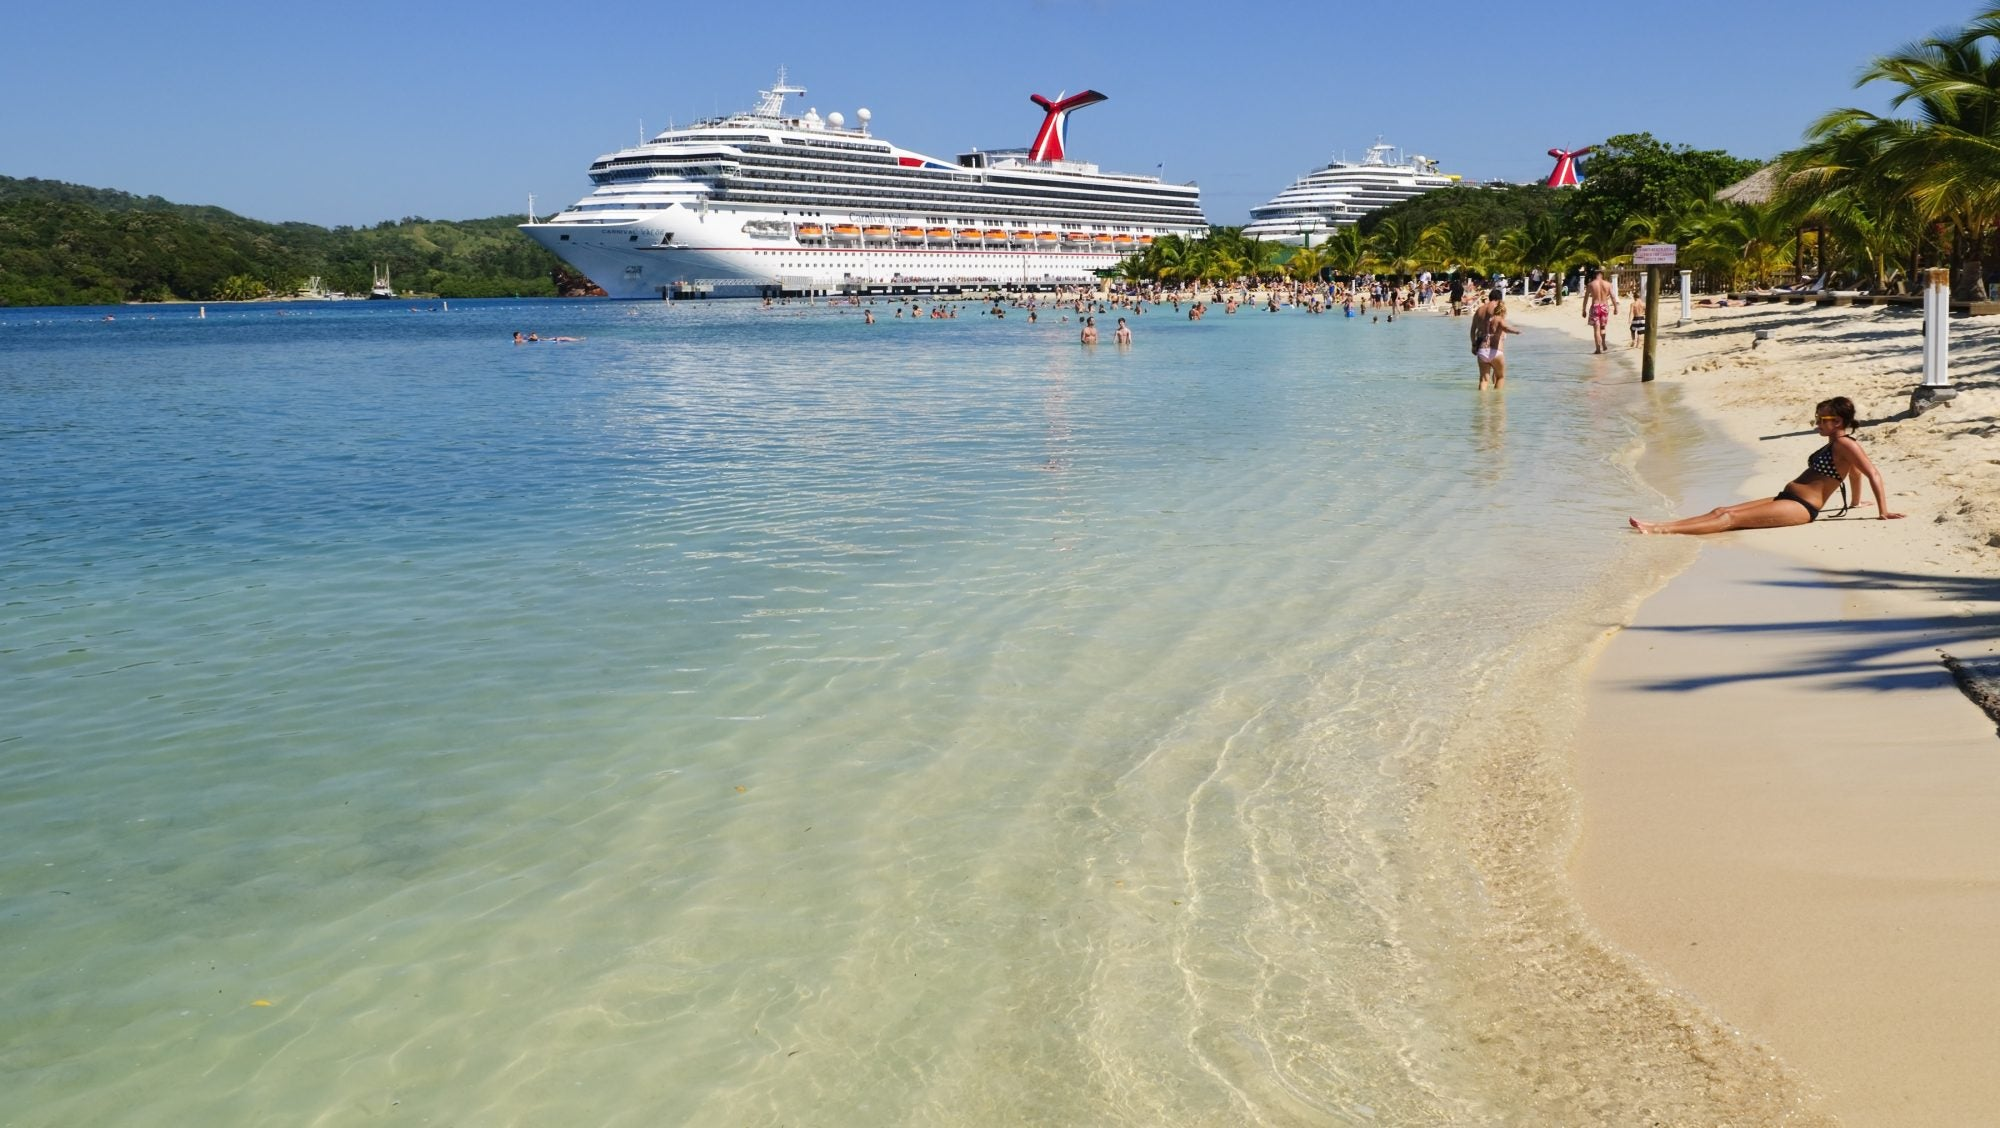 Rocking the Boat: Carnival Cruise Line Sinks to Pocketing a Portion of Increased Automatic Gratuities Meant for Employees